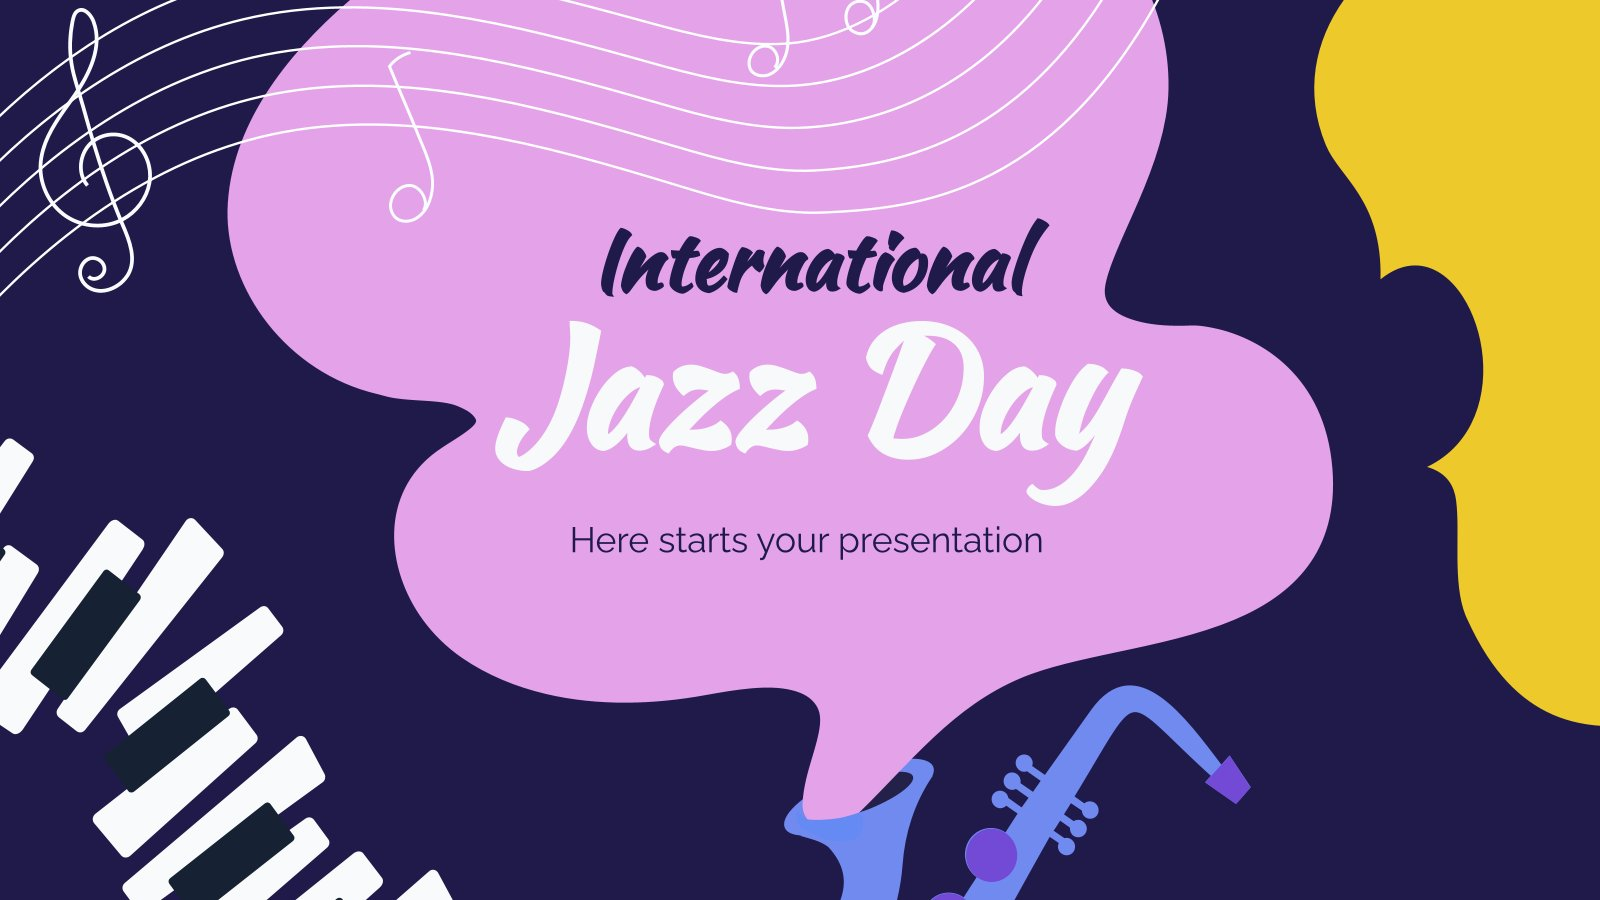 International Jazz Day presentation template